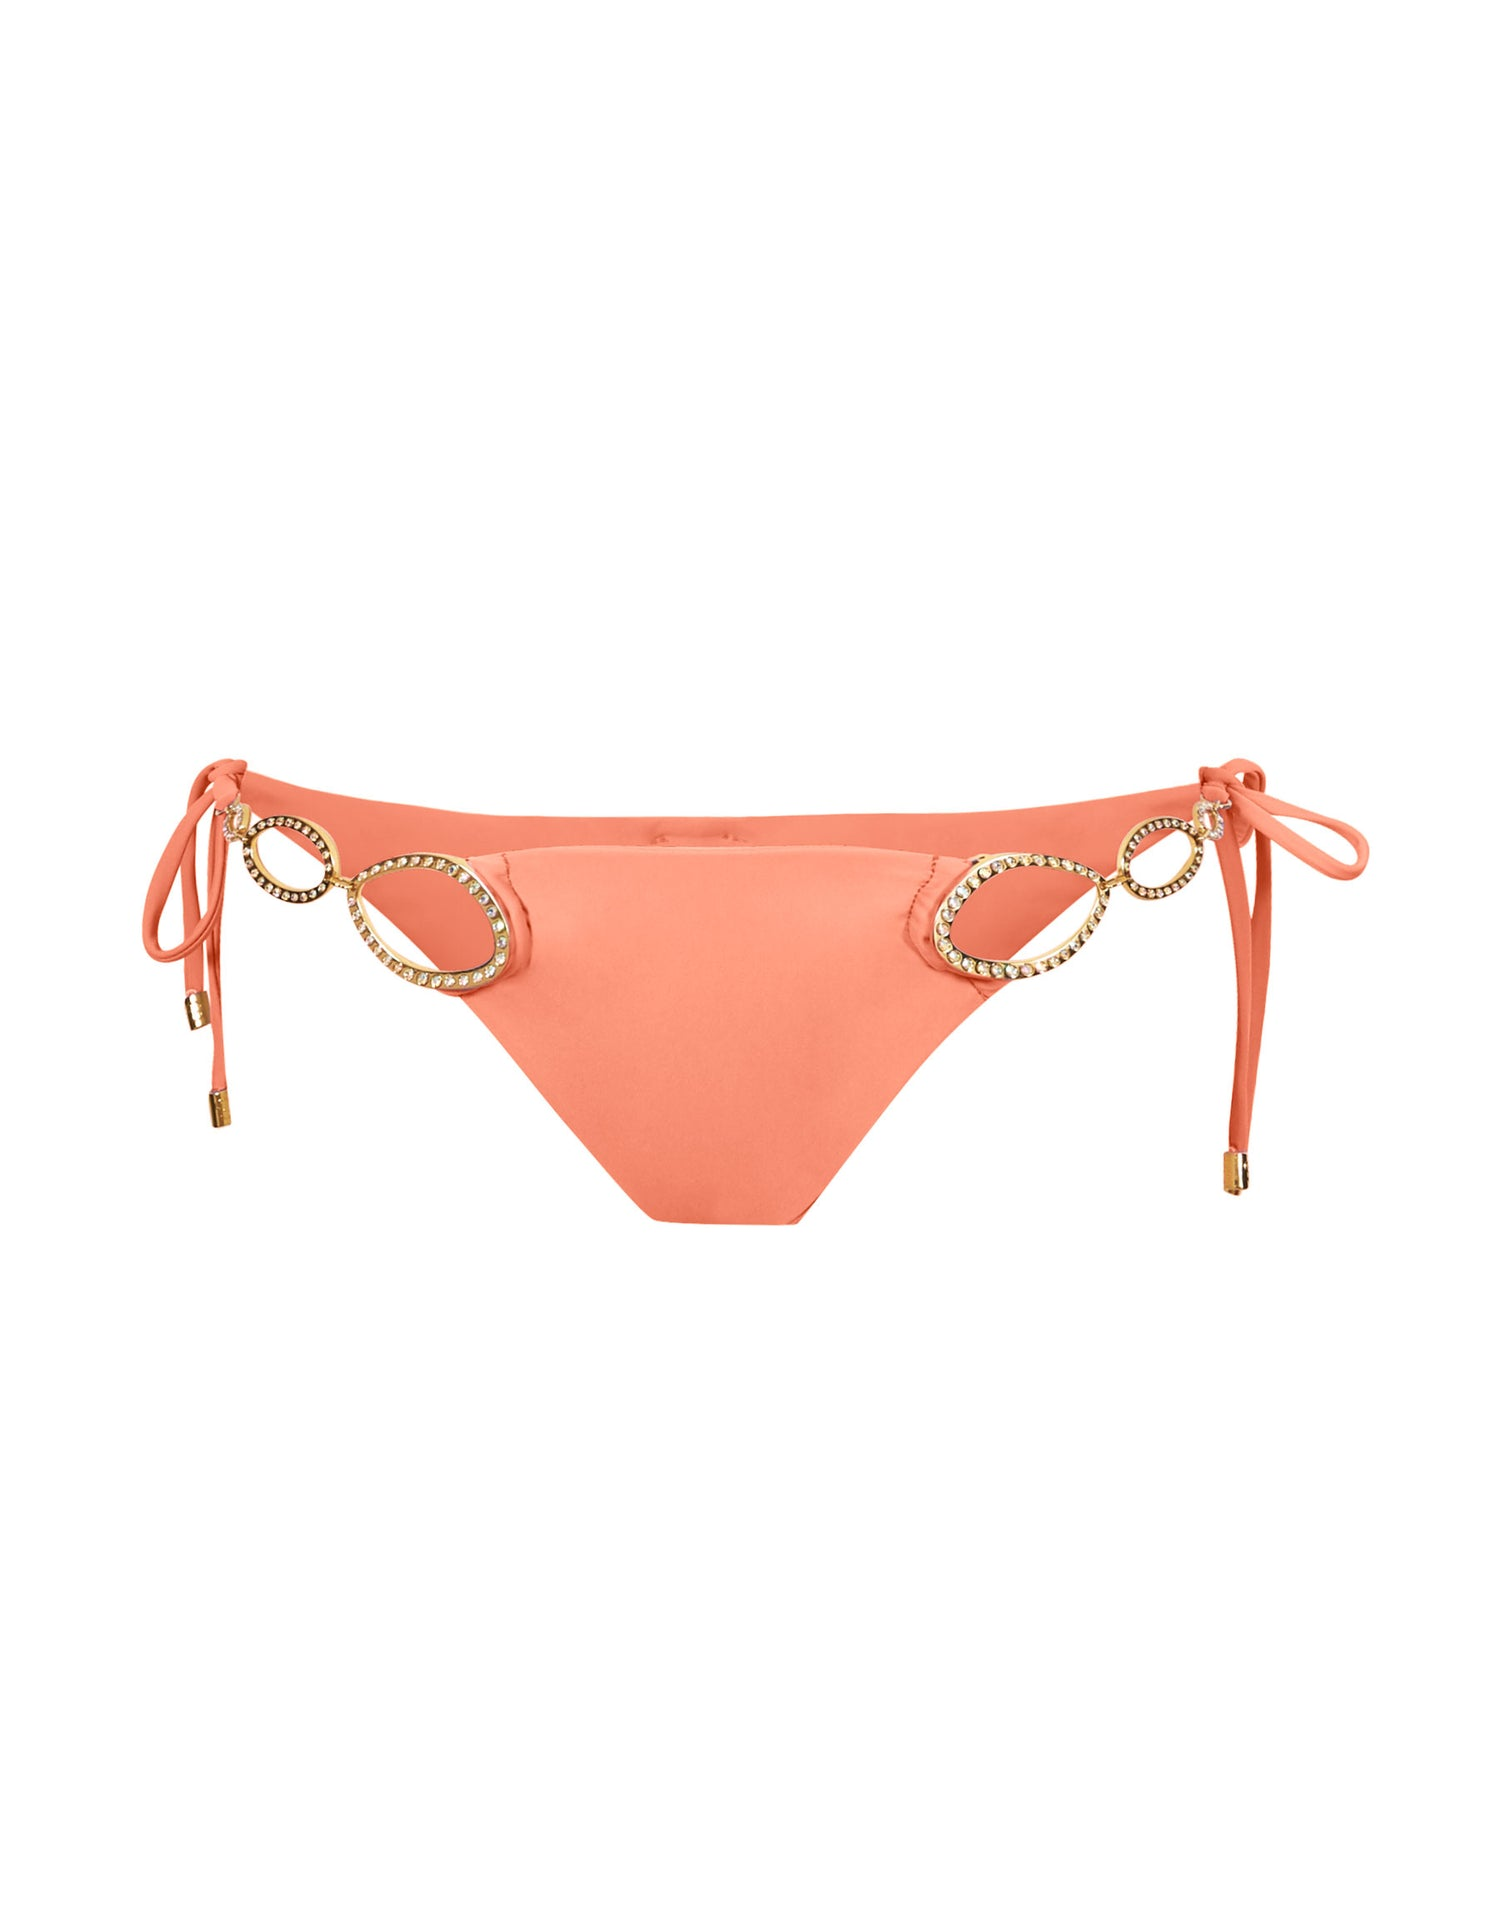 Kinsley Tie Side Bikini Bottom in Sorbet with Gold Hardware - product view